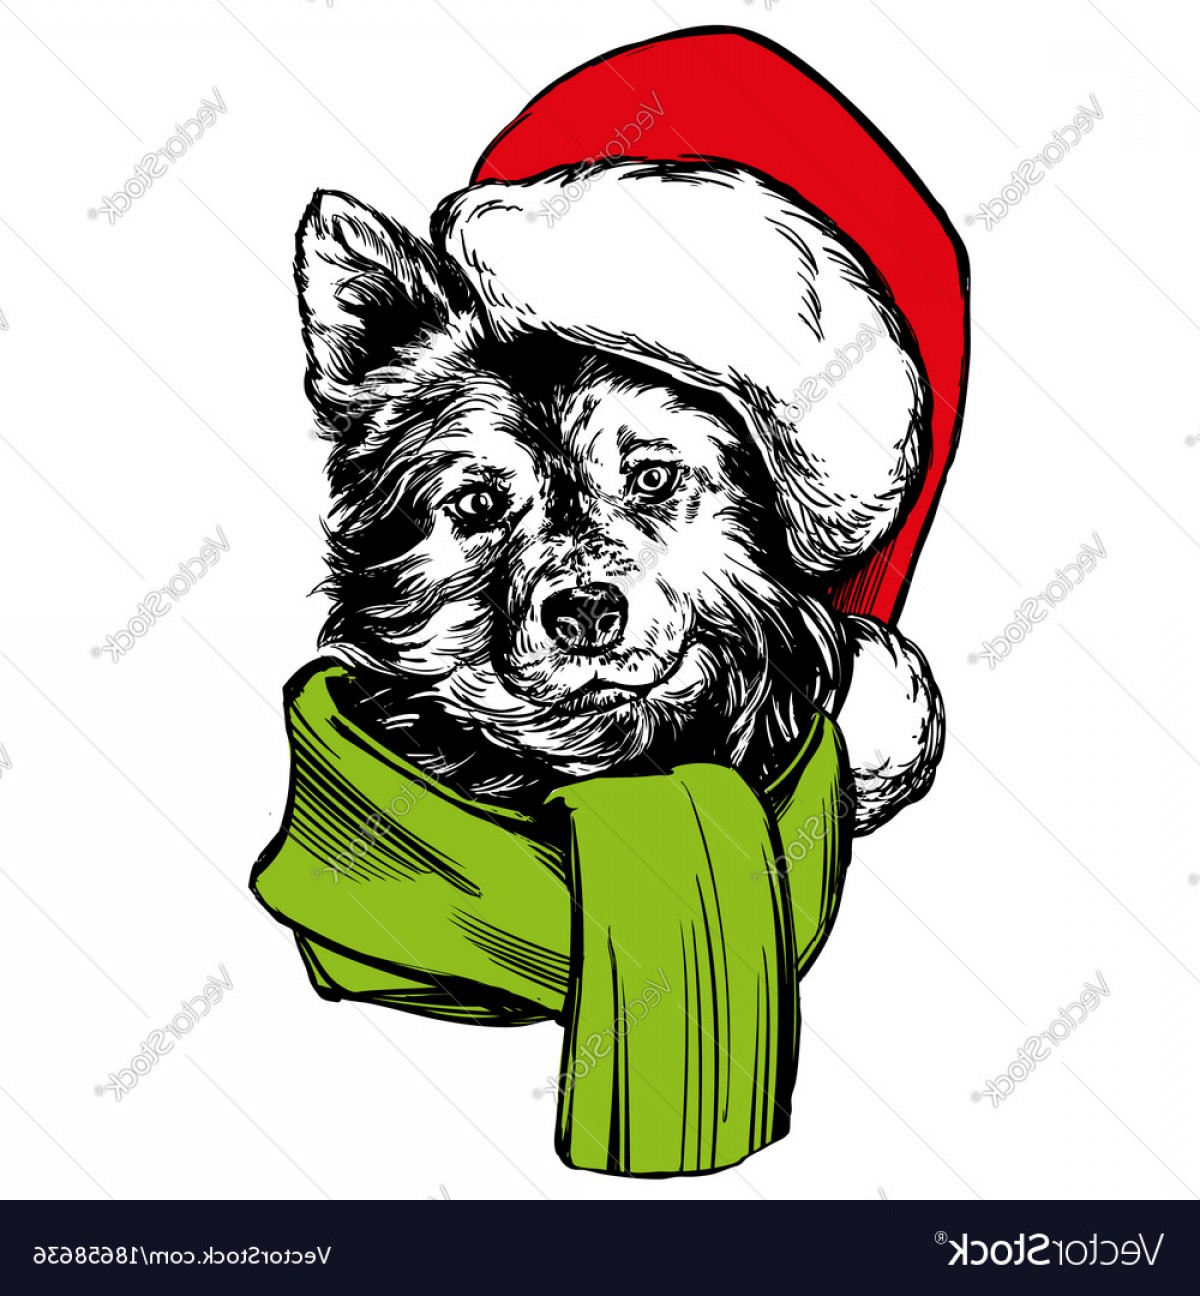 Stocking Hat Vector: Exclusive Dog In Santa Stocking Hat Santa Claus Christmas Vector